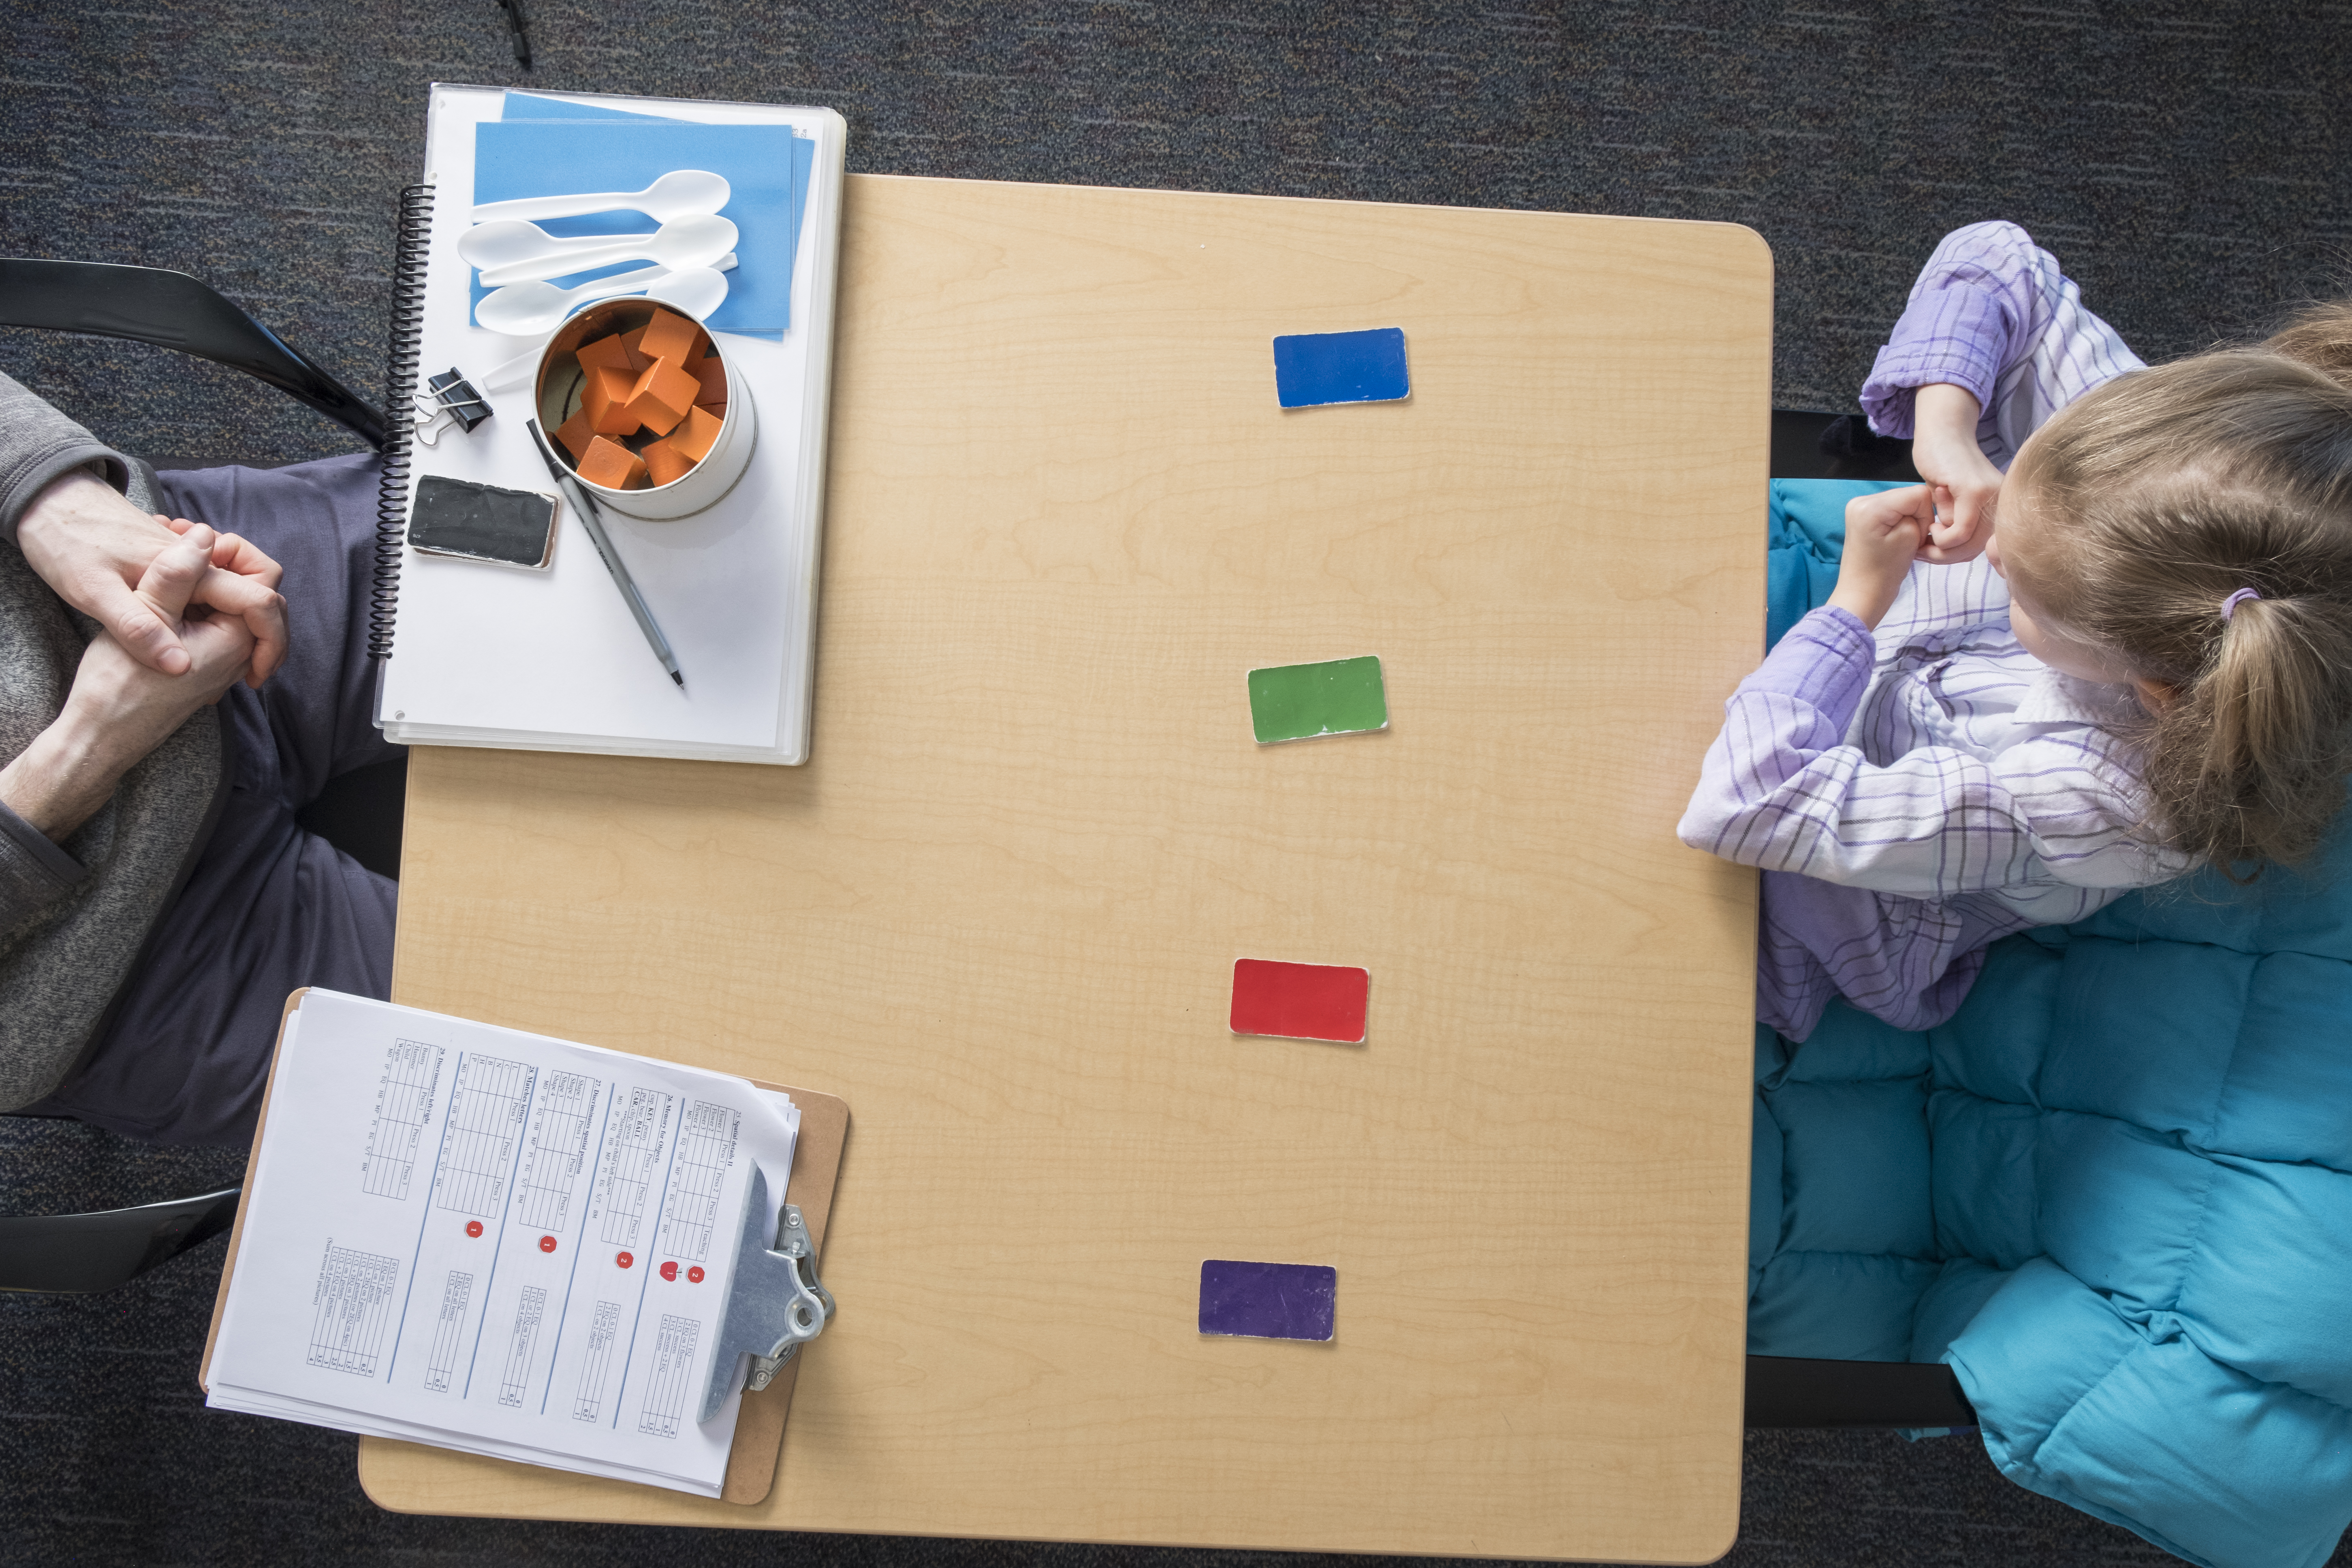 Image shows an overhead view of a young child sitting at a table with a researcher.